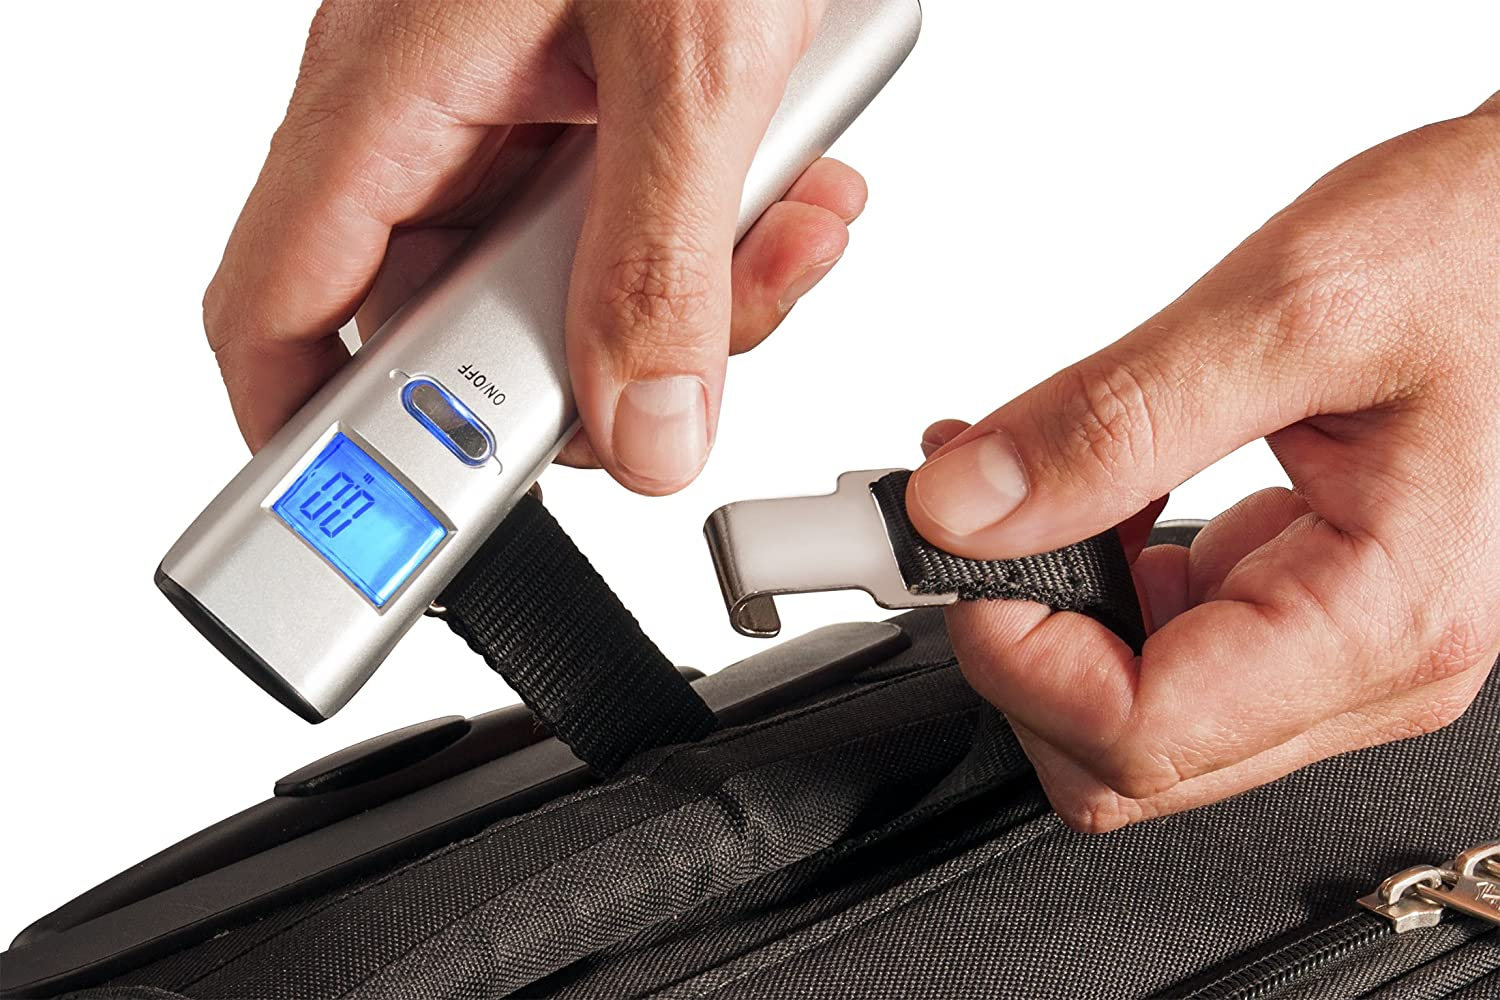 Carry Bag E-Guide Digital Luggage Scale Dunheger 110 lb FREE AAA Batteries